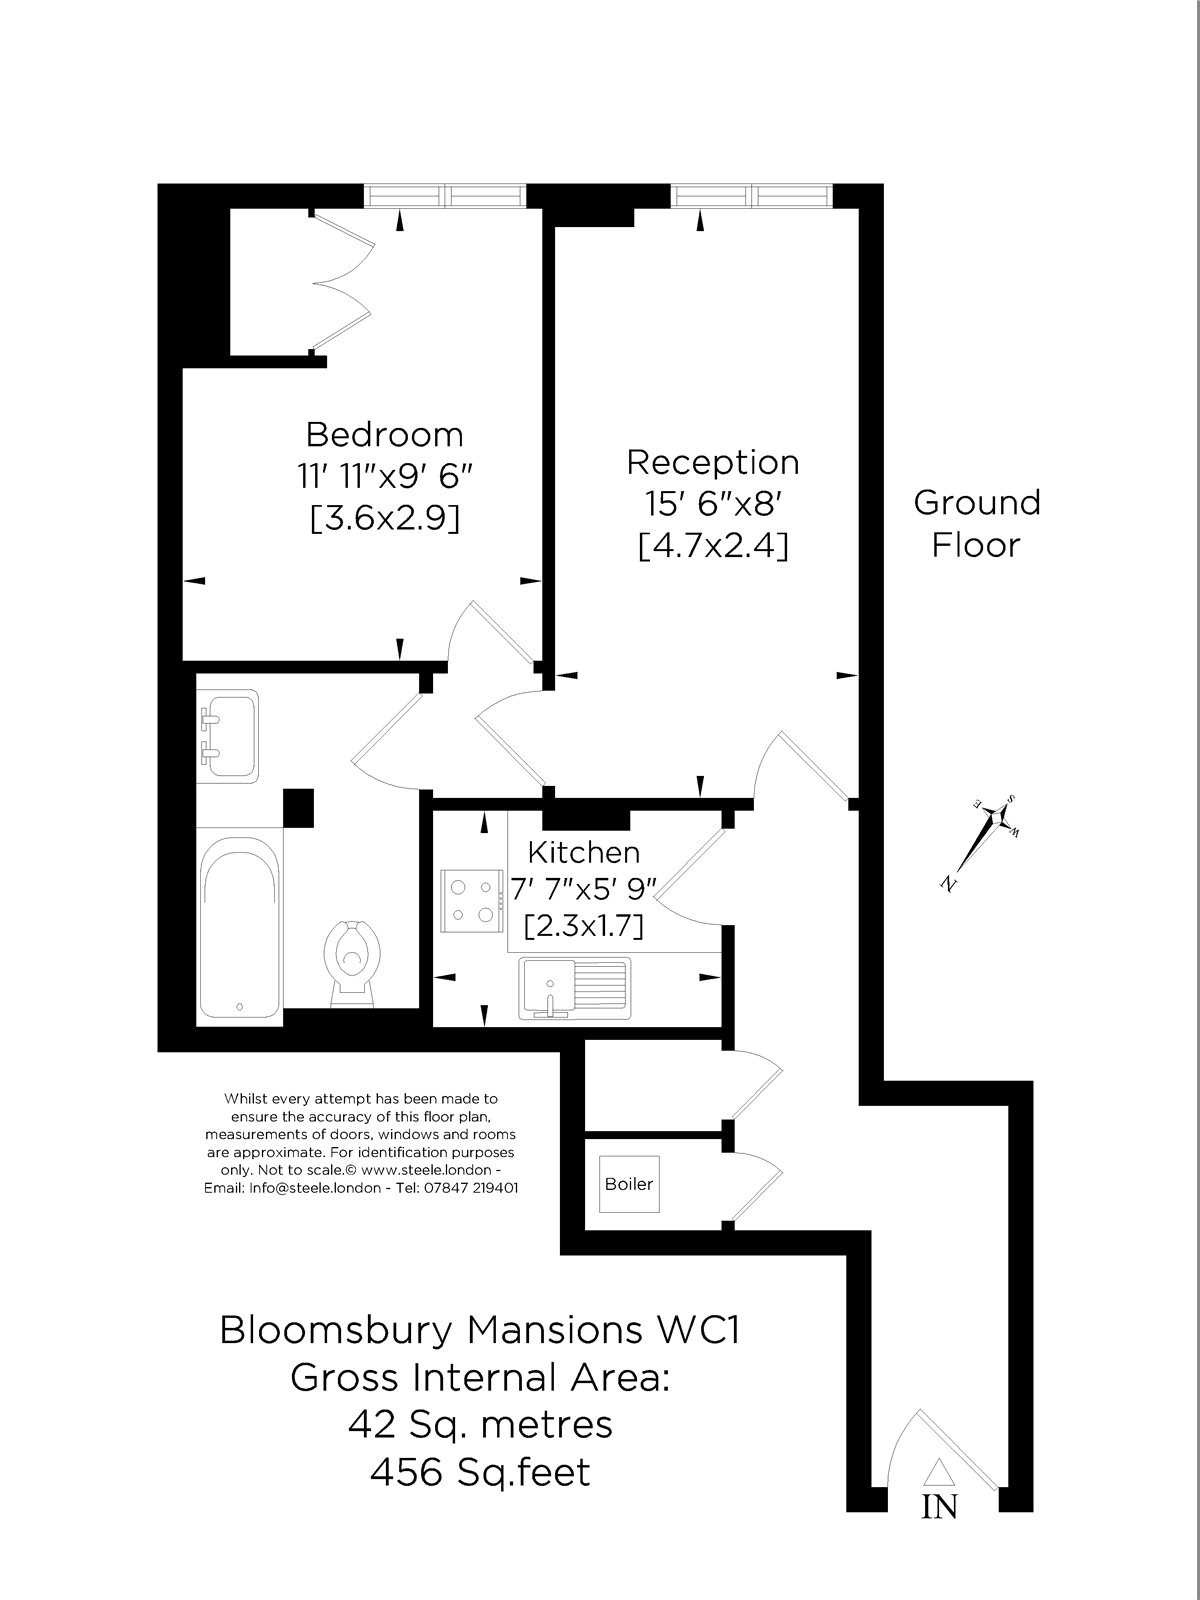 Gatwick Airport Floor Plan Bloomsbury Mansions 13 16 Russell Square London Wc1b 1